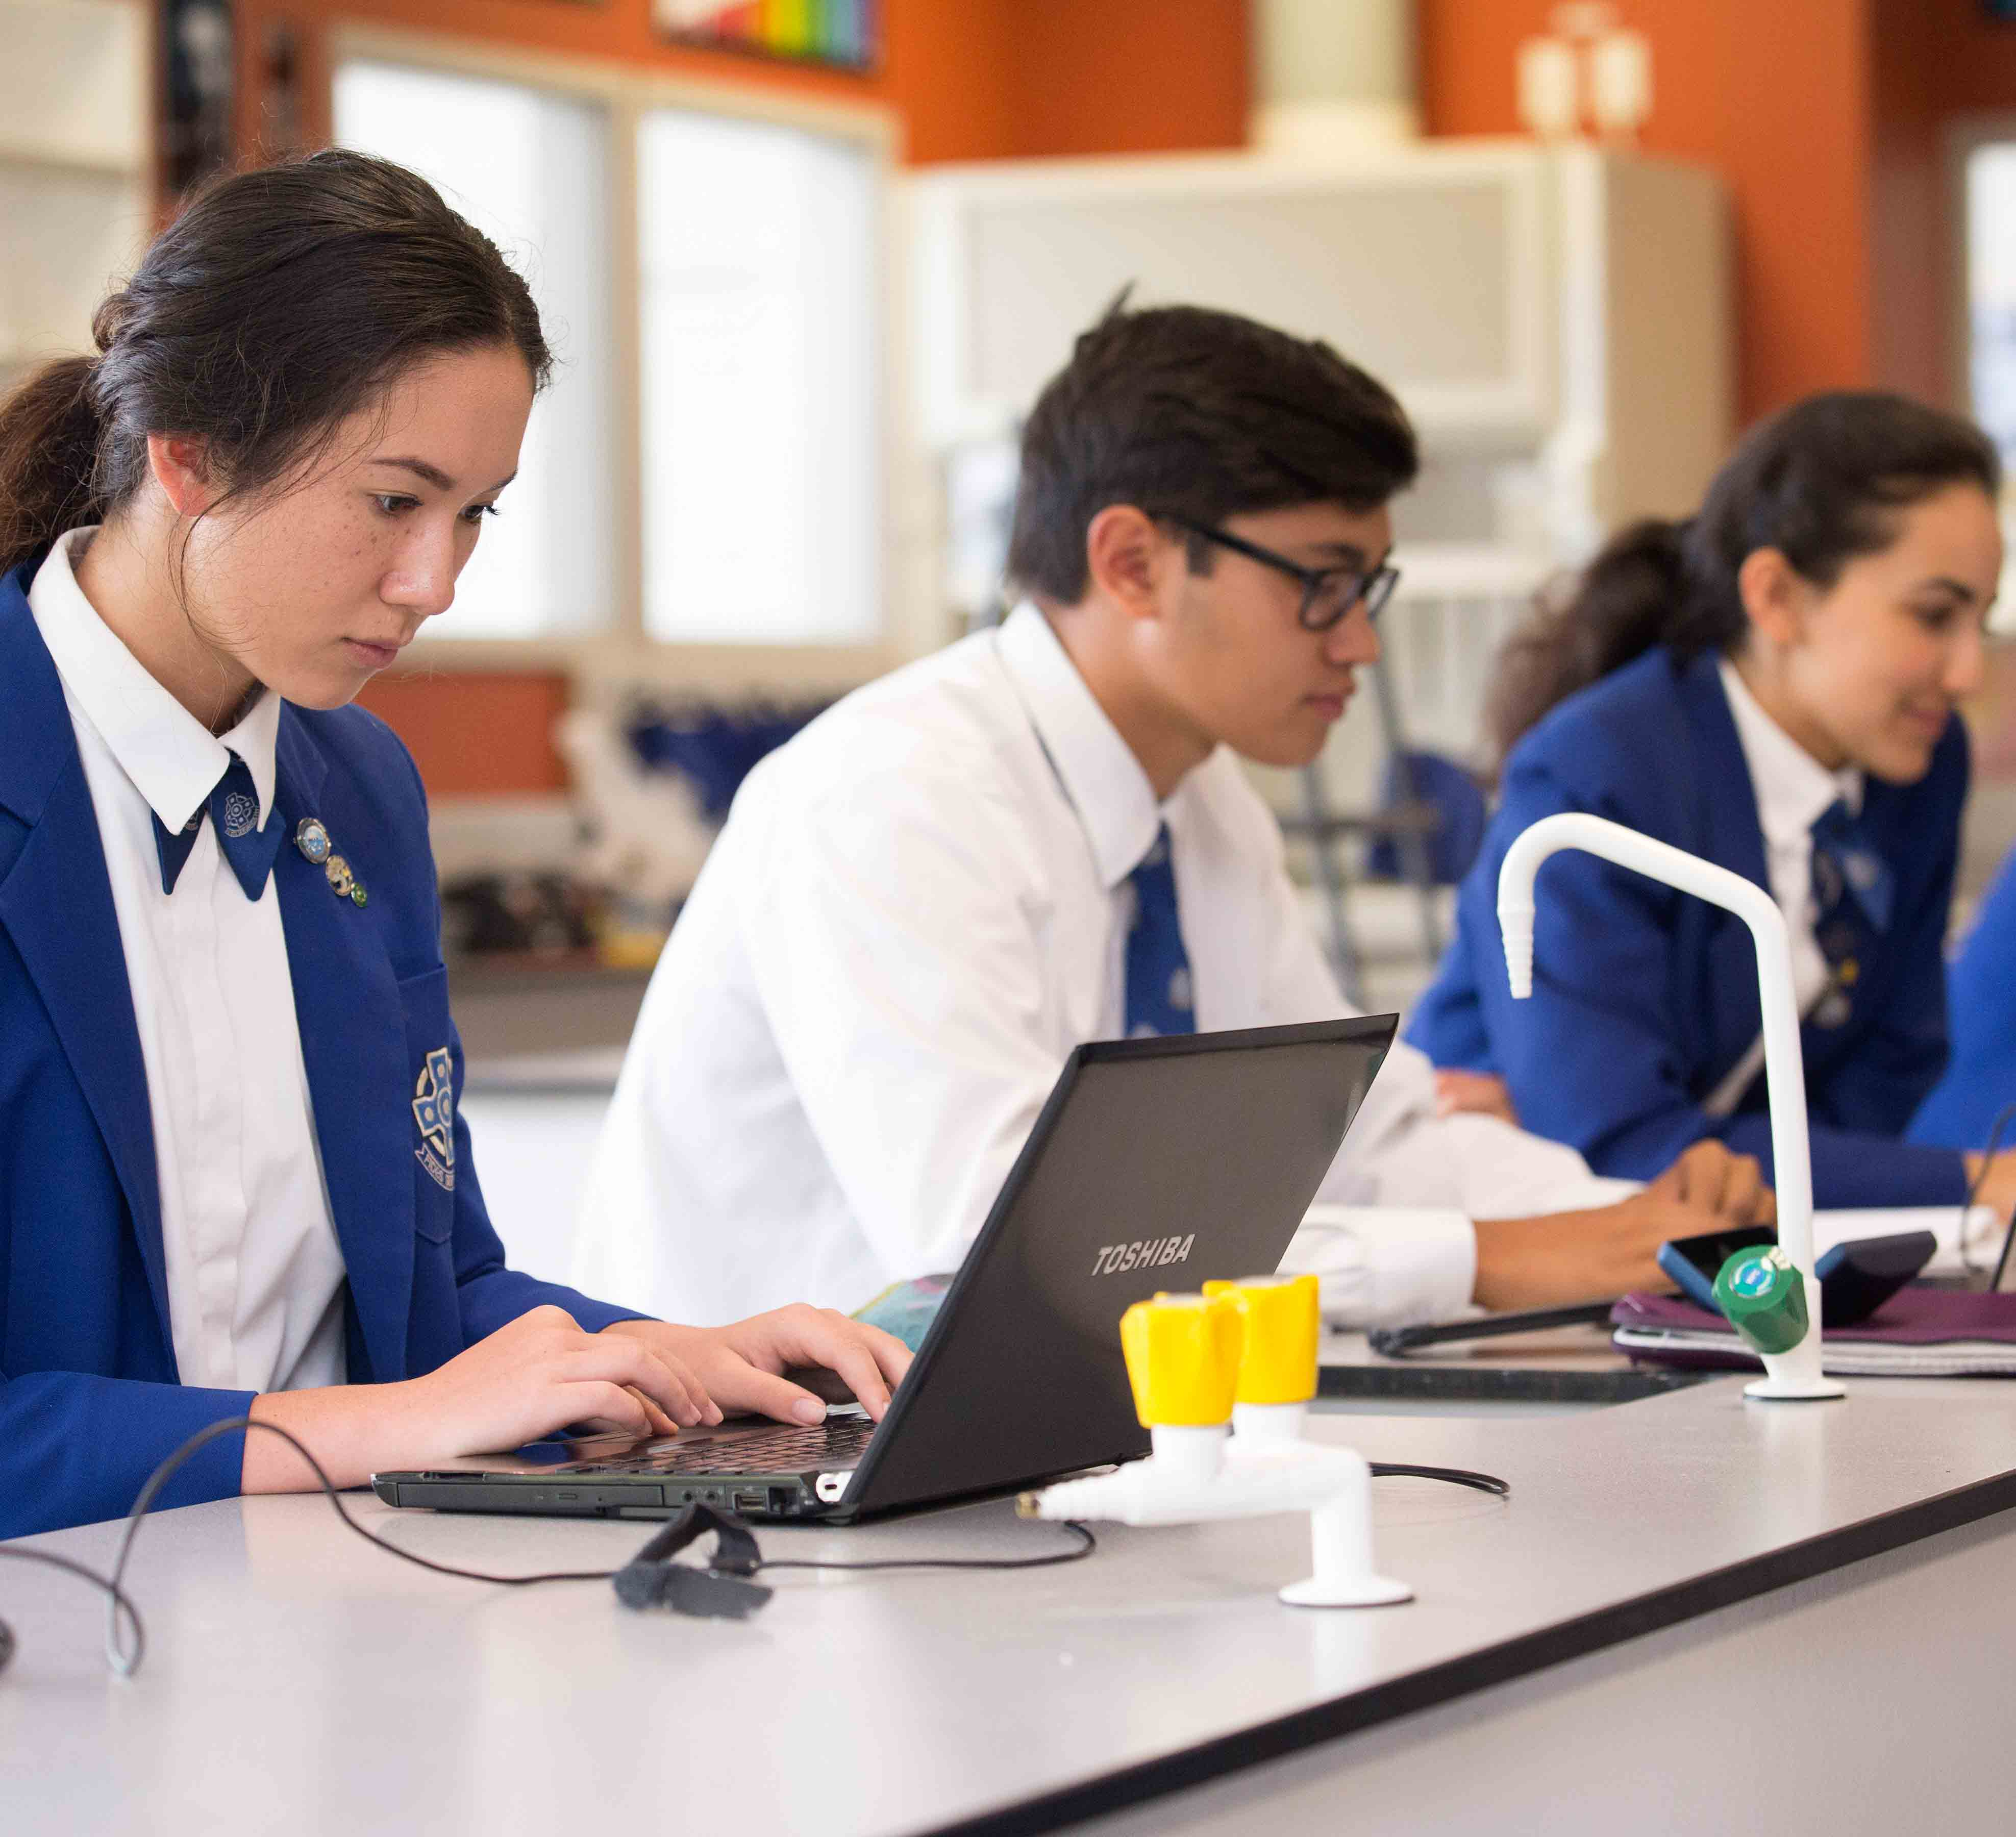 Saint-Kentigern-Senior-College-Enhanced-Learning-Programme.jpg